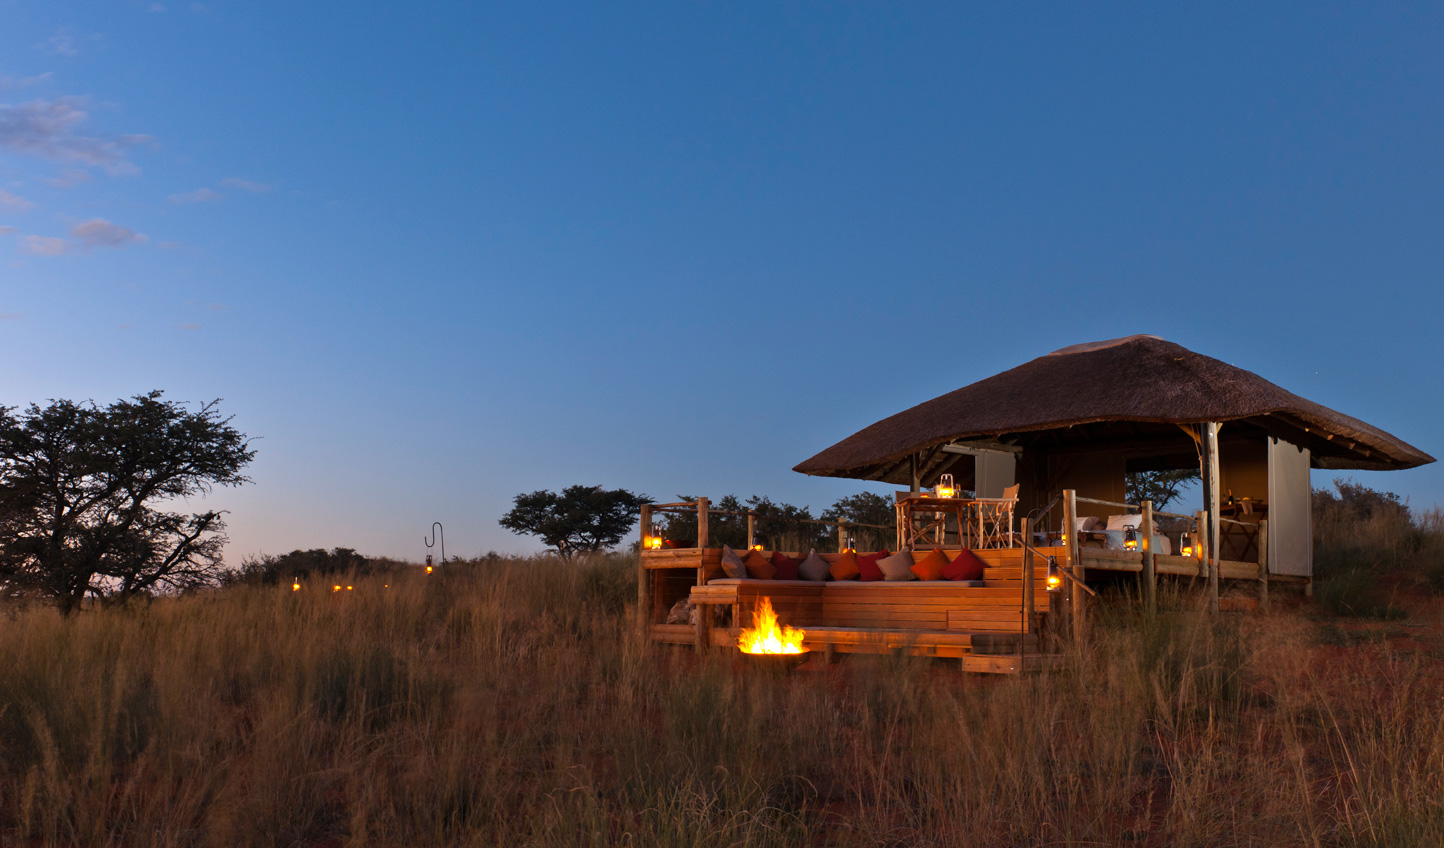 Sleep out in the wilds of the Kalahari